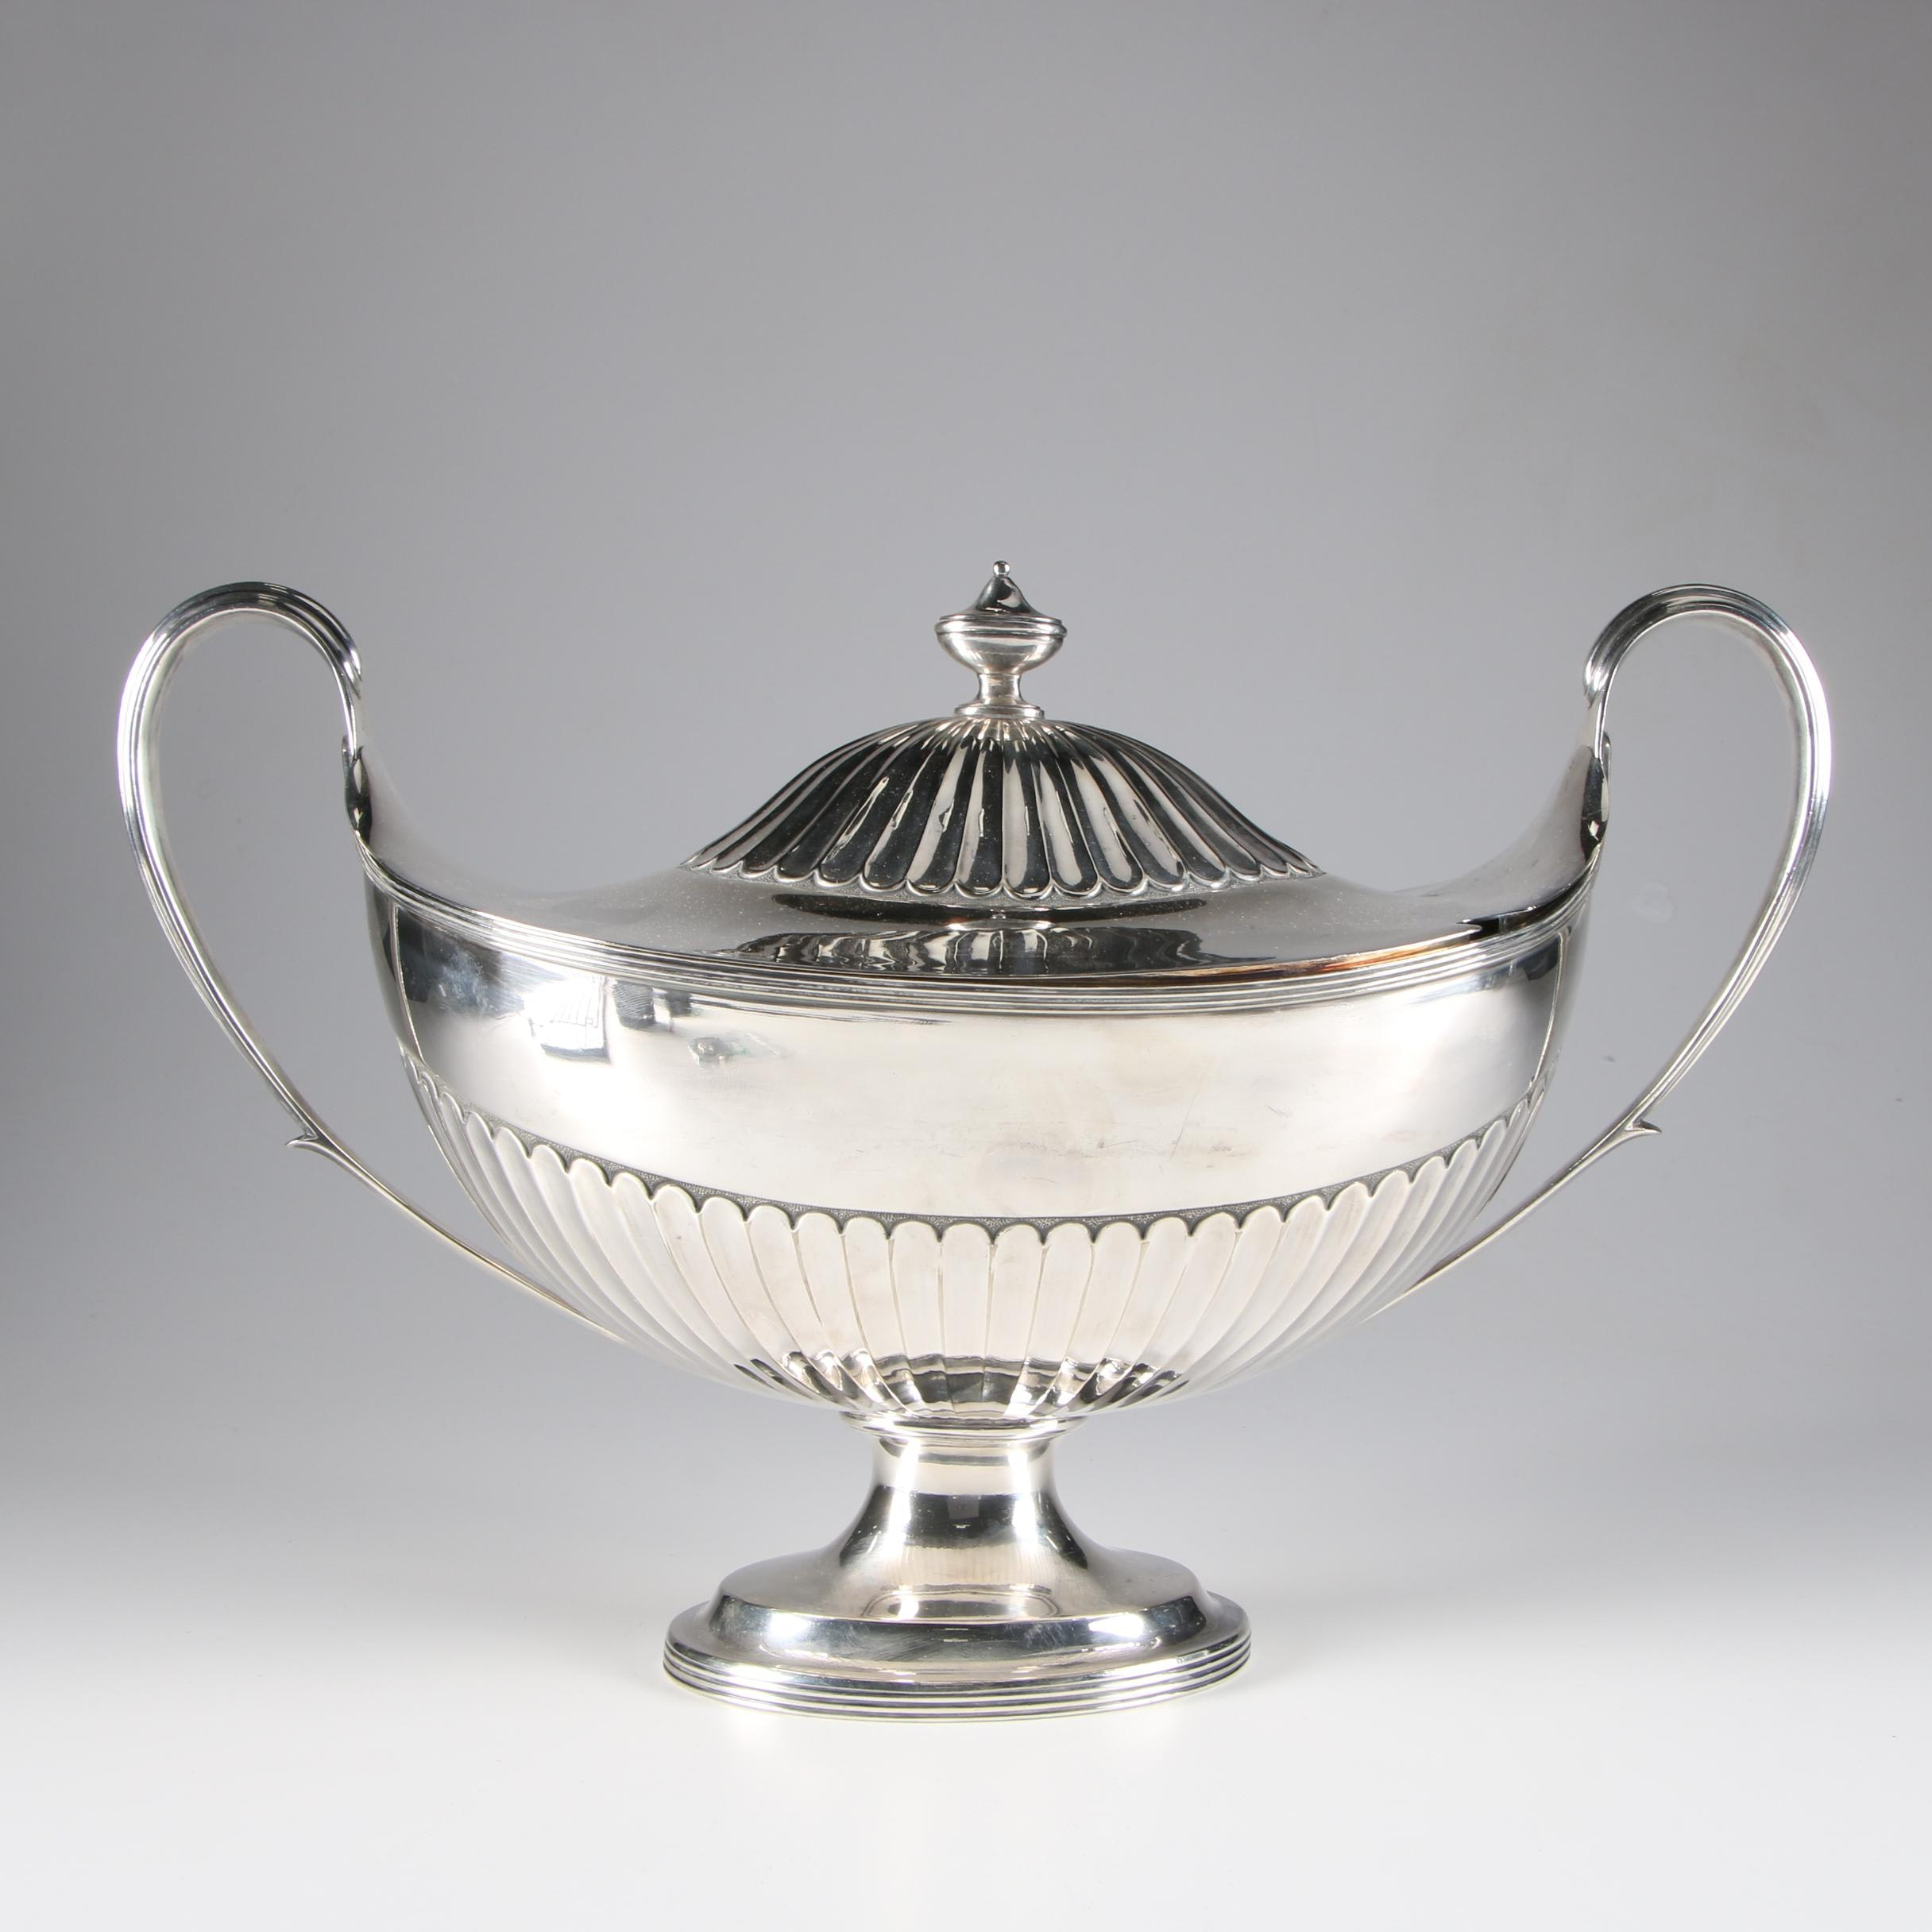 Martin, Hall & Co George III Style Silver Plate Covered Tureen